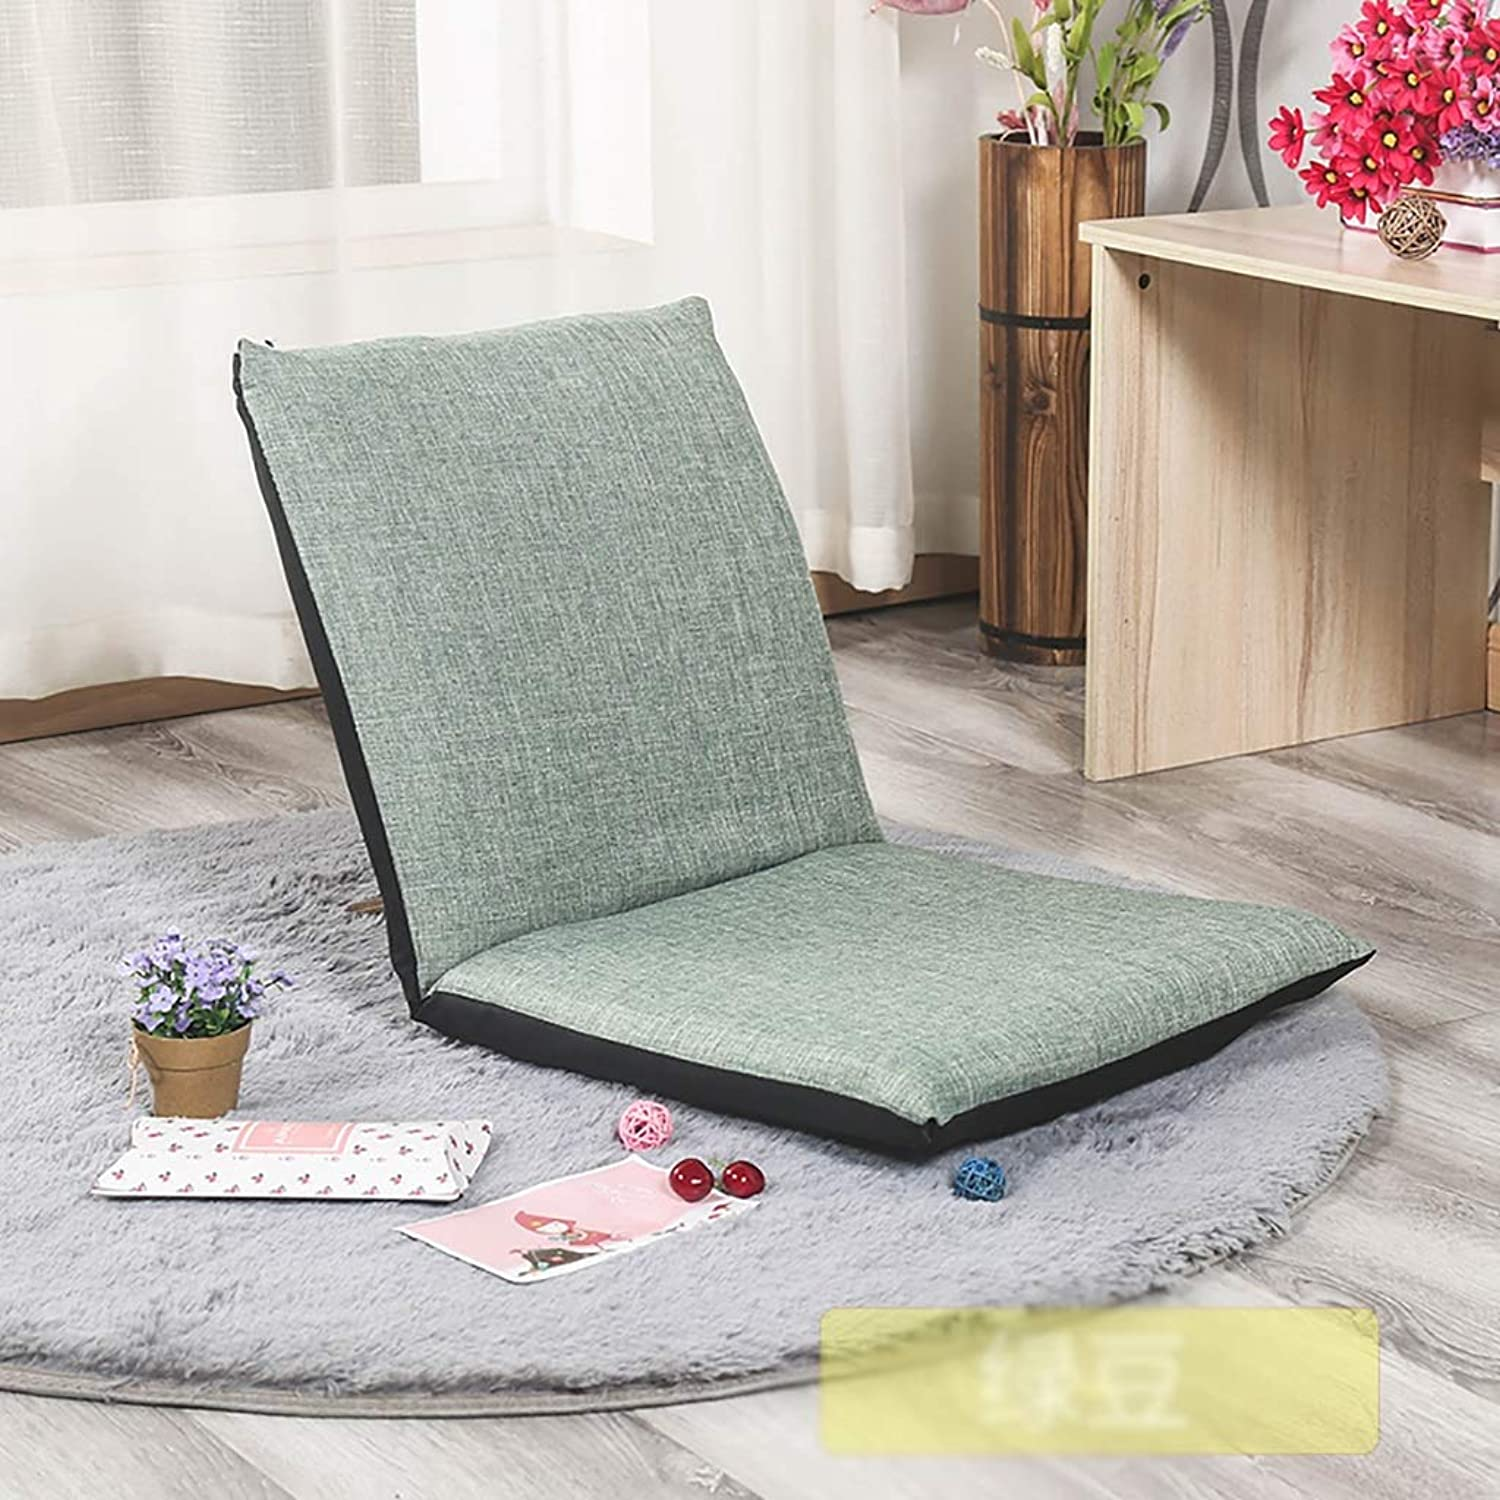 HYXLRKD Lazy couch foldable single cushion bed small sofa chair bay window chair backrest cushion 80  40  40cm (color   F)